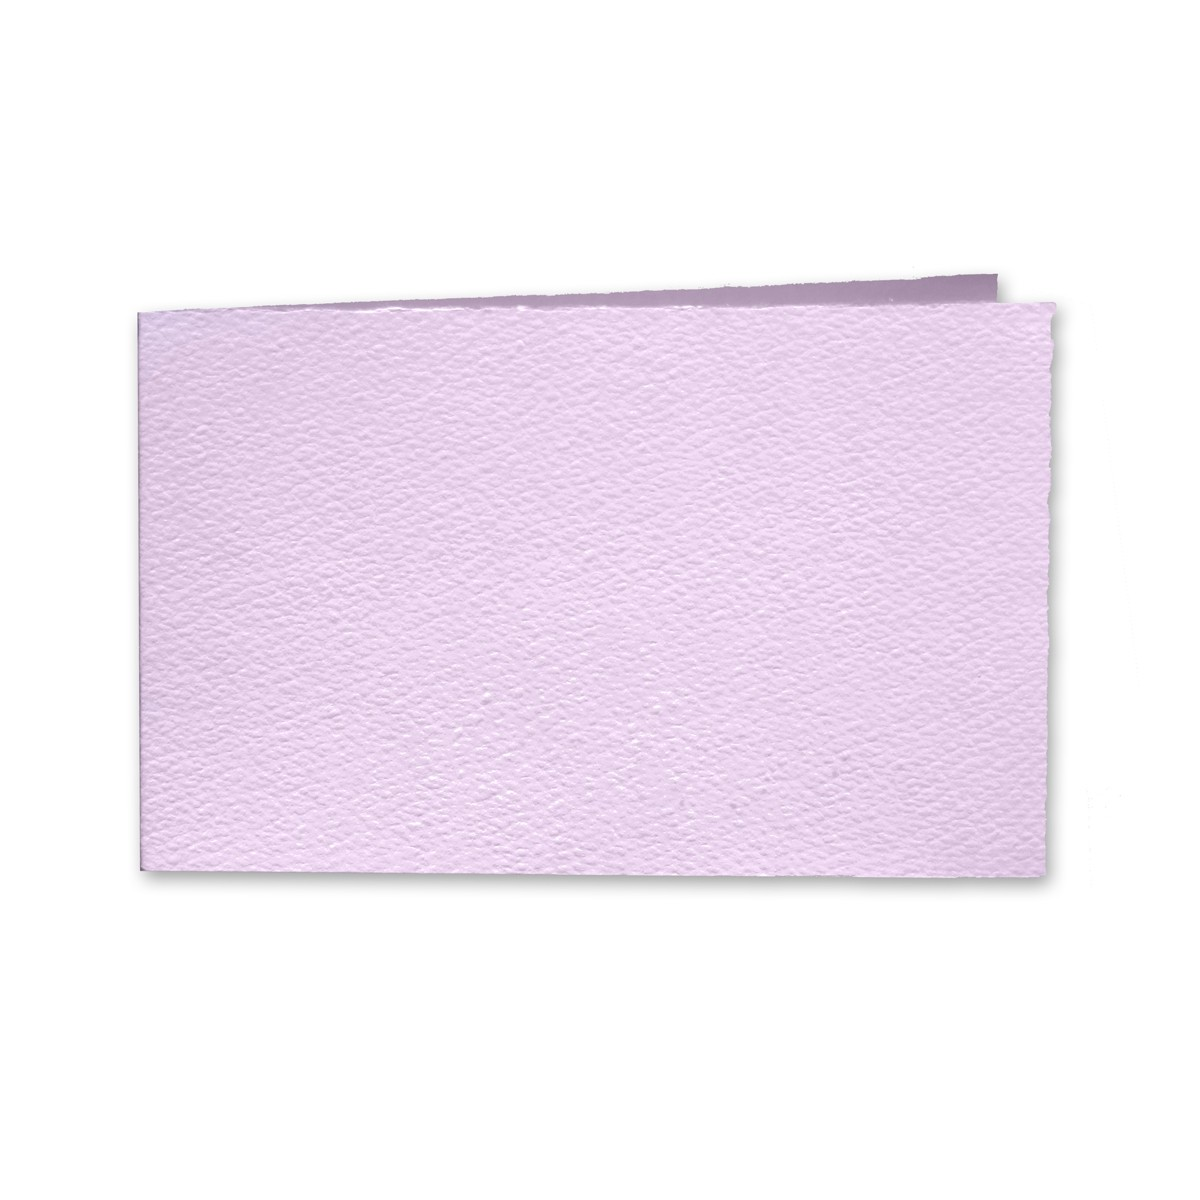 "Arturo Lavender Album Foldovers (600AC) 97# Cover (4.53"" x 13.39"" open size) Bulk Pack of 100"